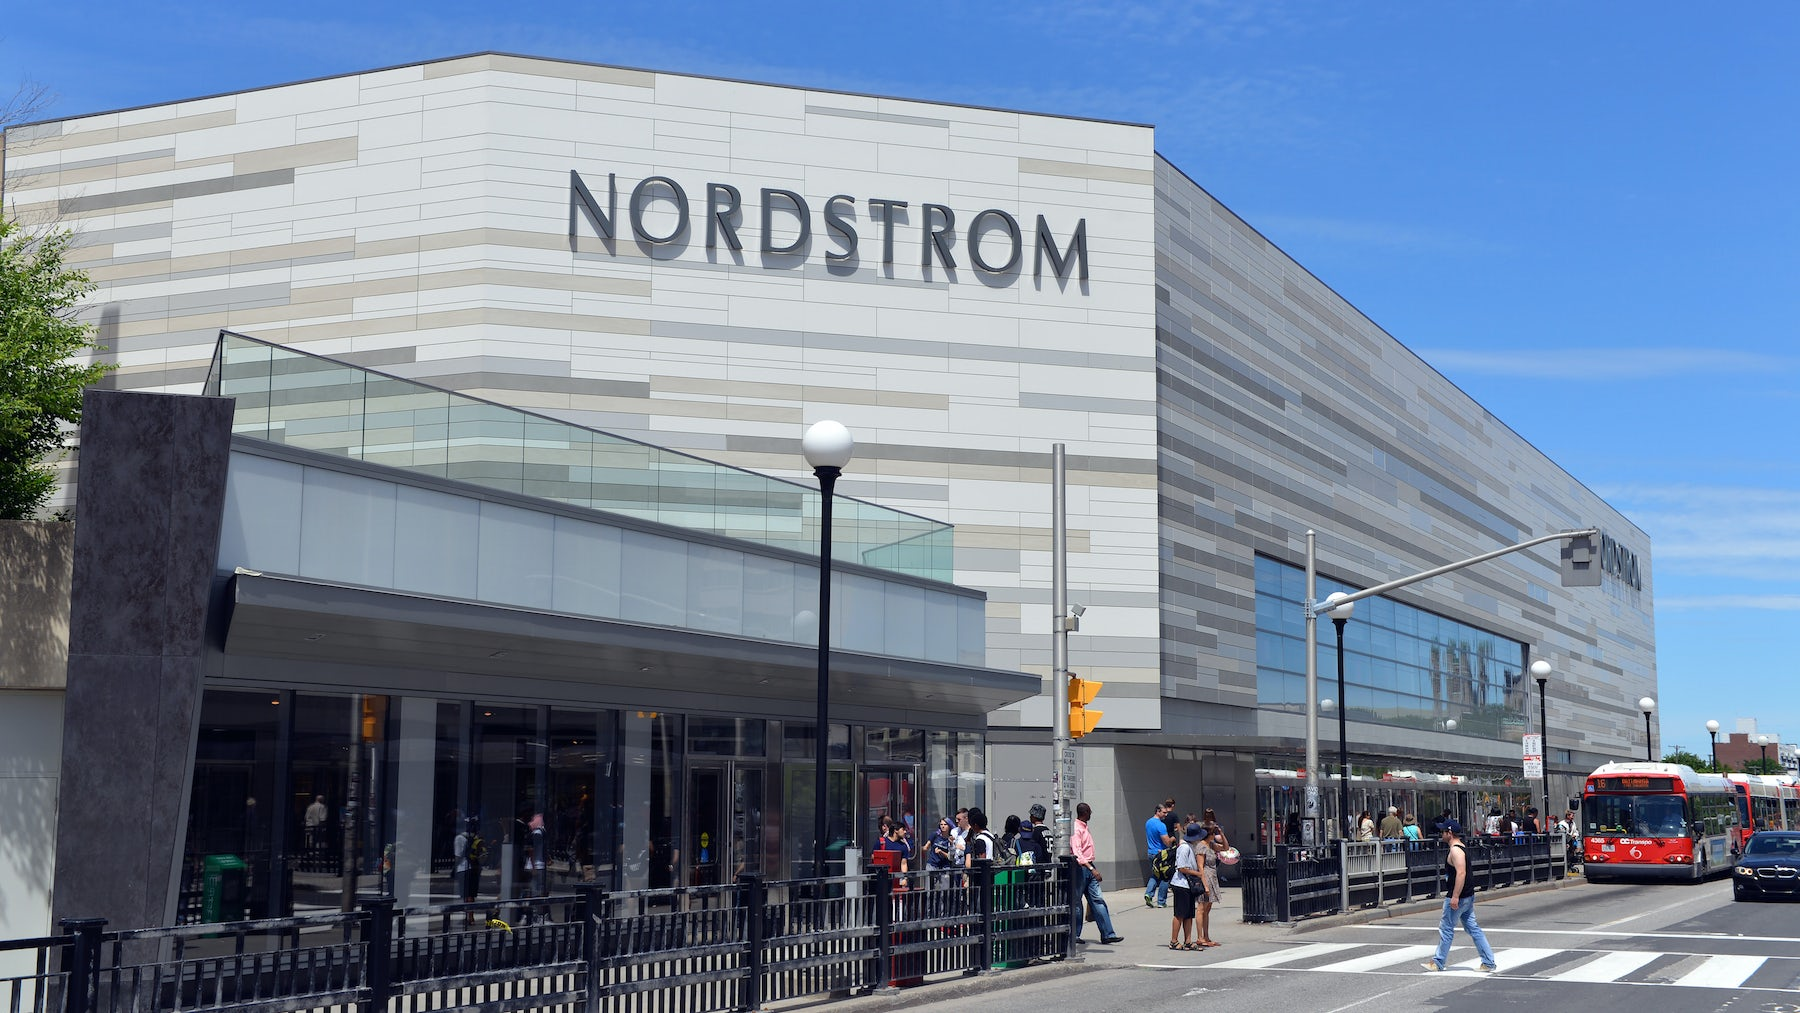 Nordstrom Store in the Rideau Centre shopping mall in Ottawa, Canada | Source: Shutterstock